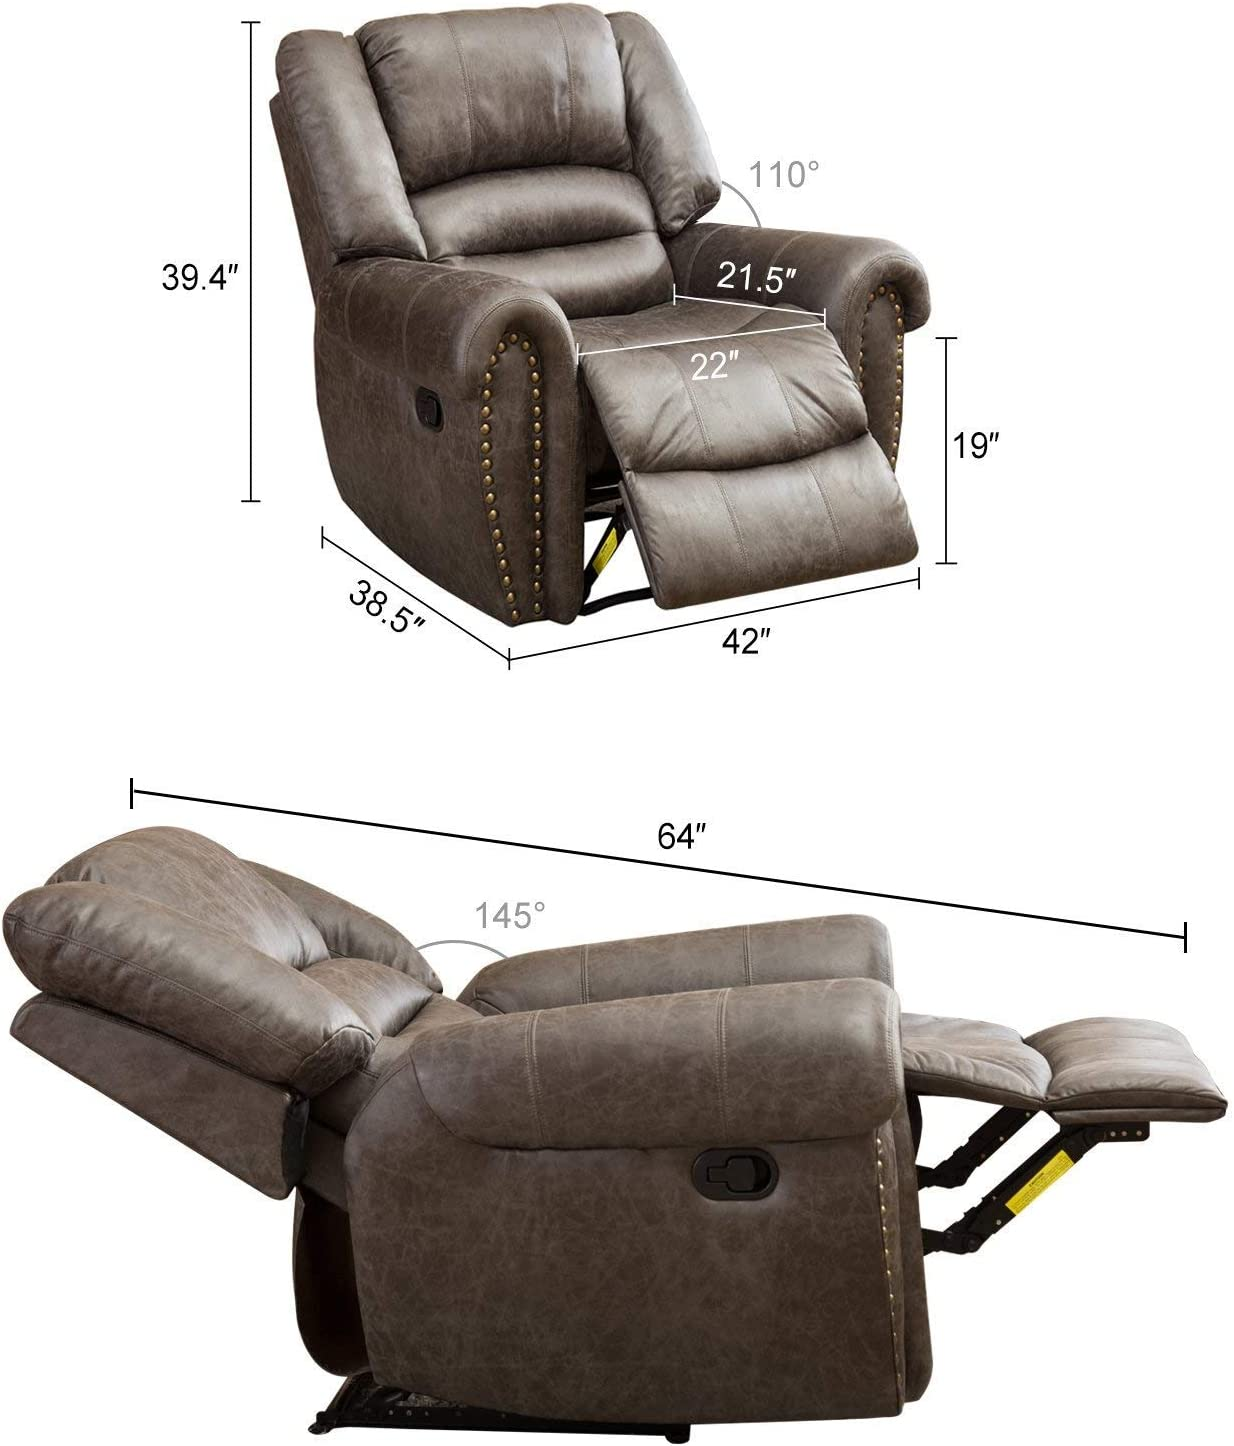 BONZY Oversized Recliner Leather Lounge Chair dimensions